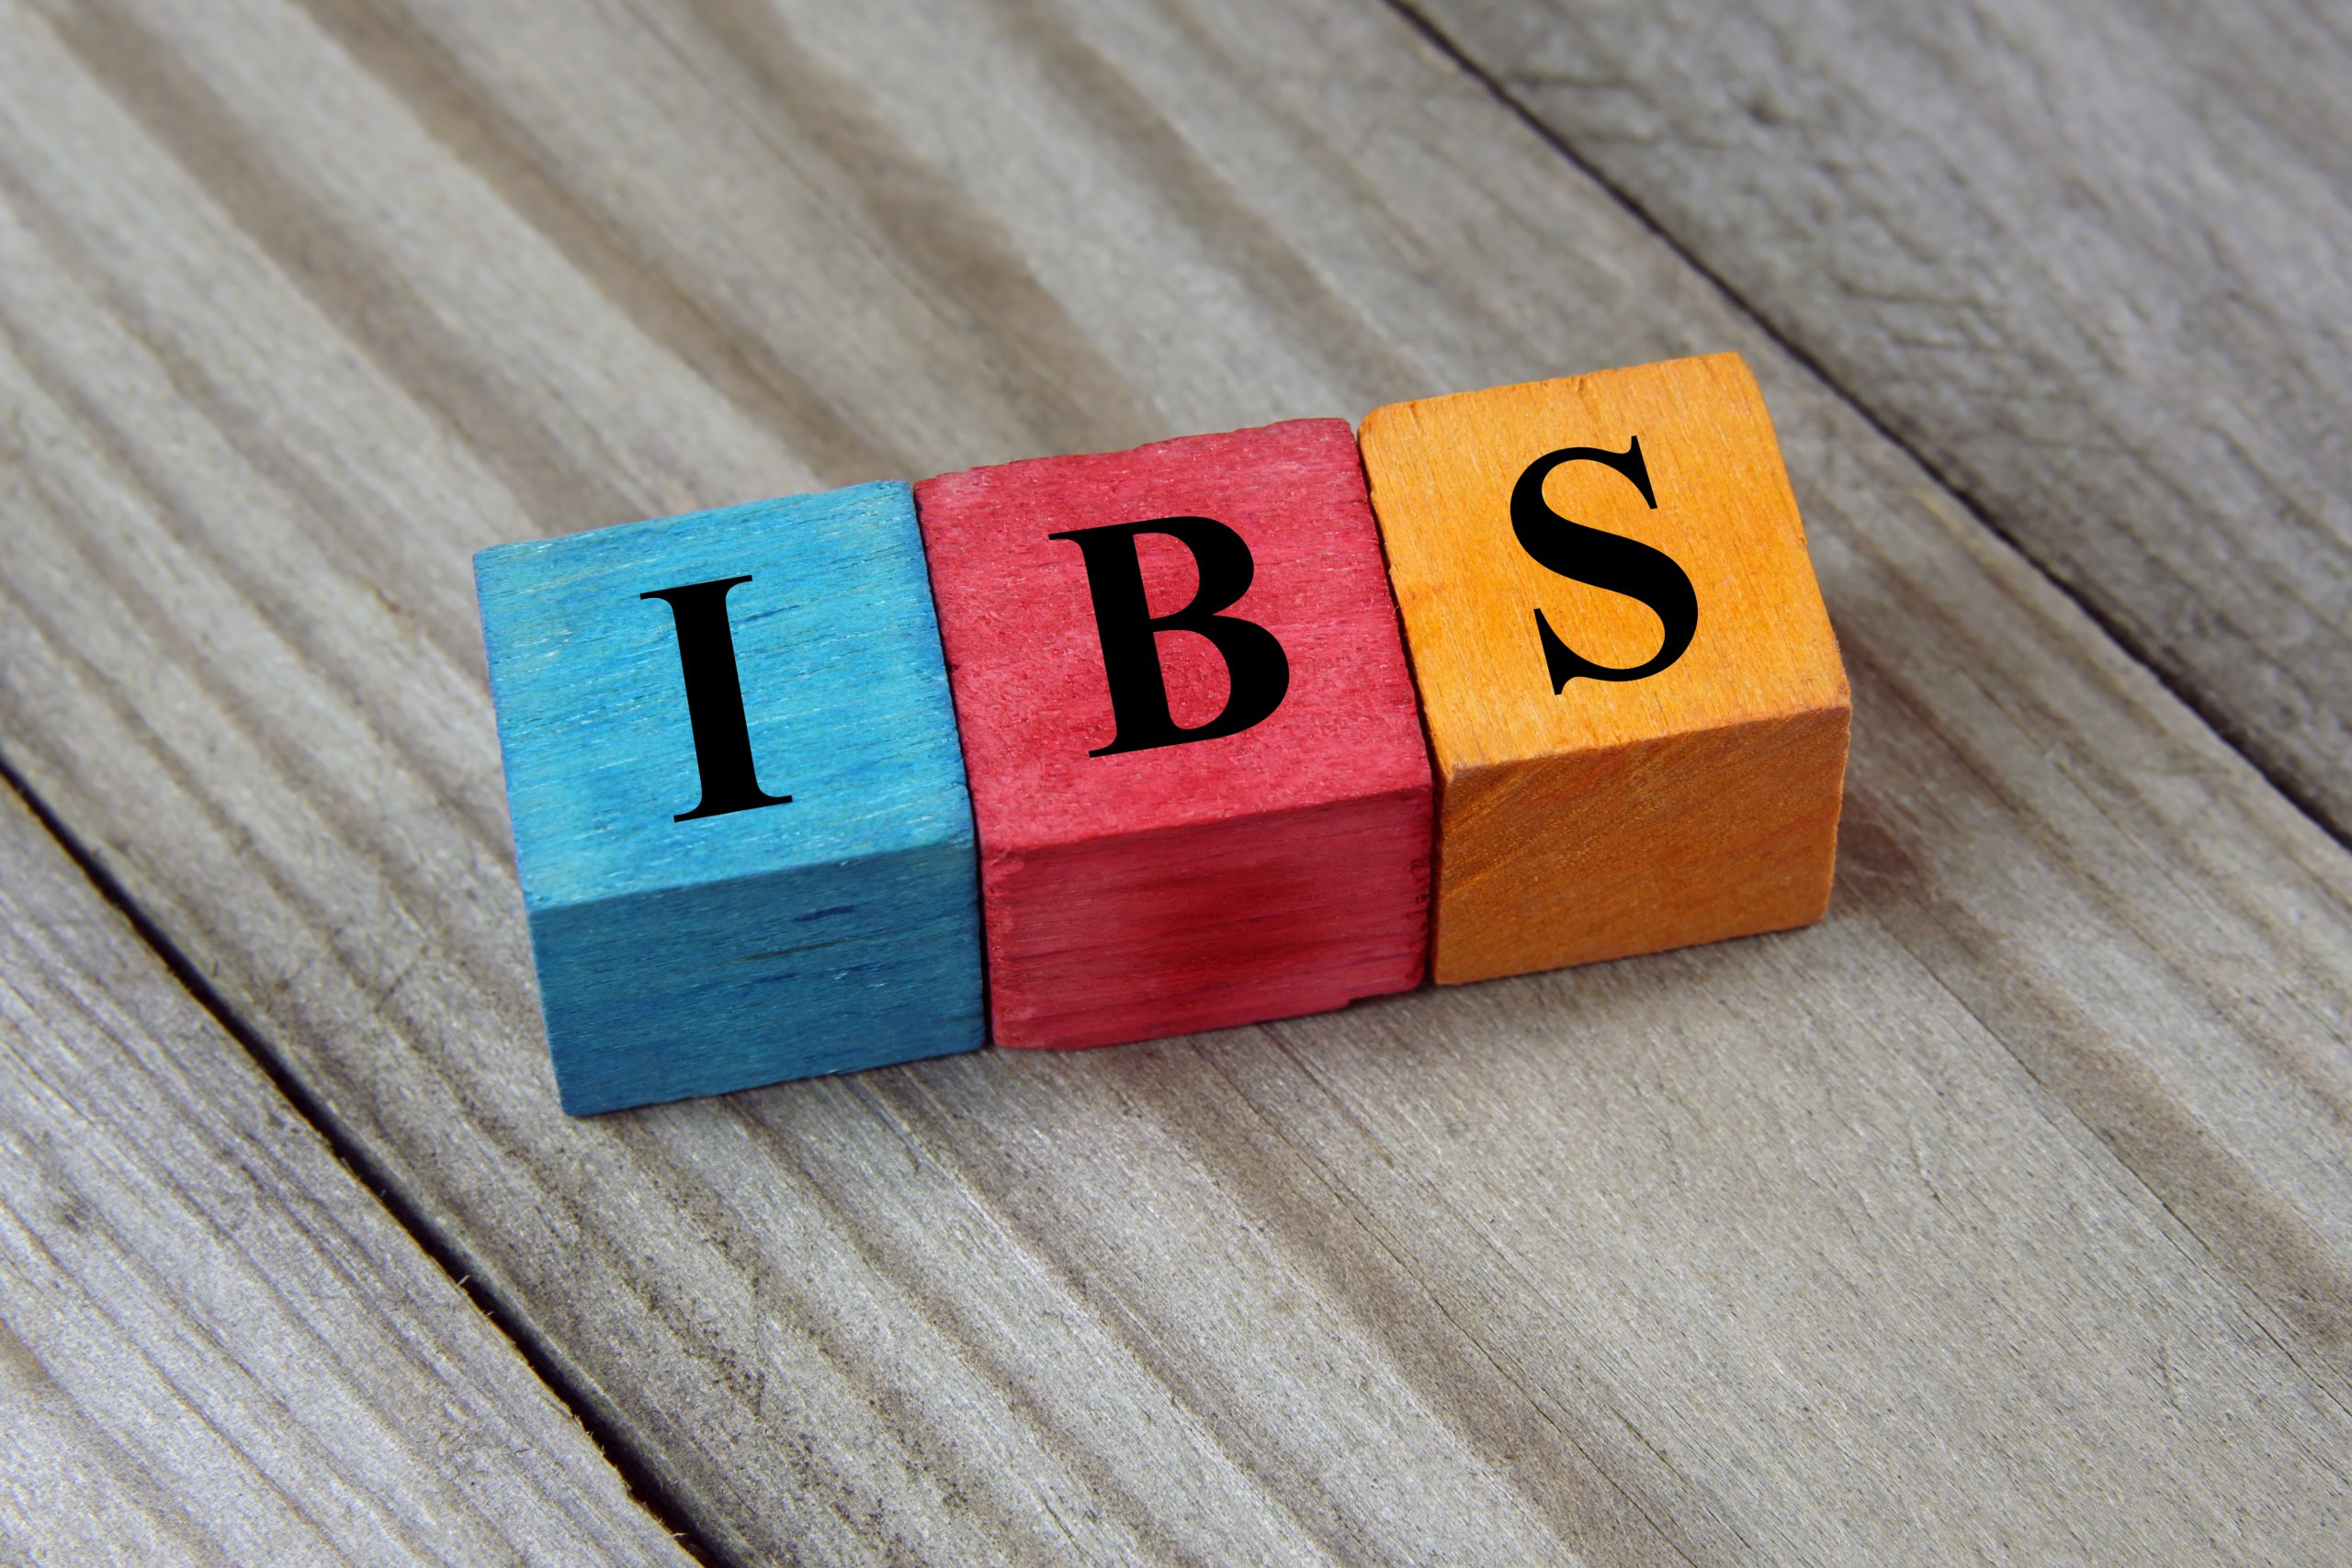 what is irritable bowel syndrome?